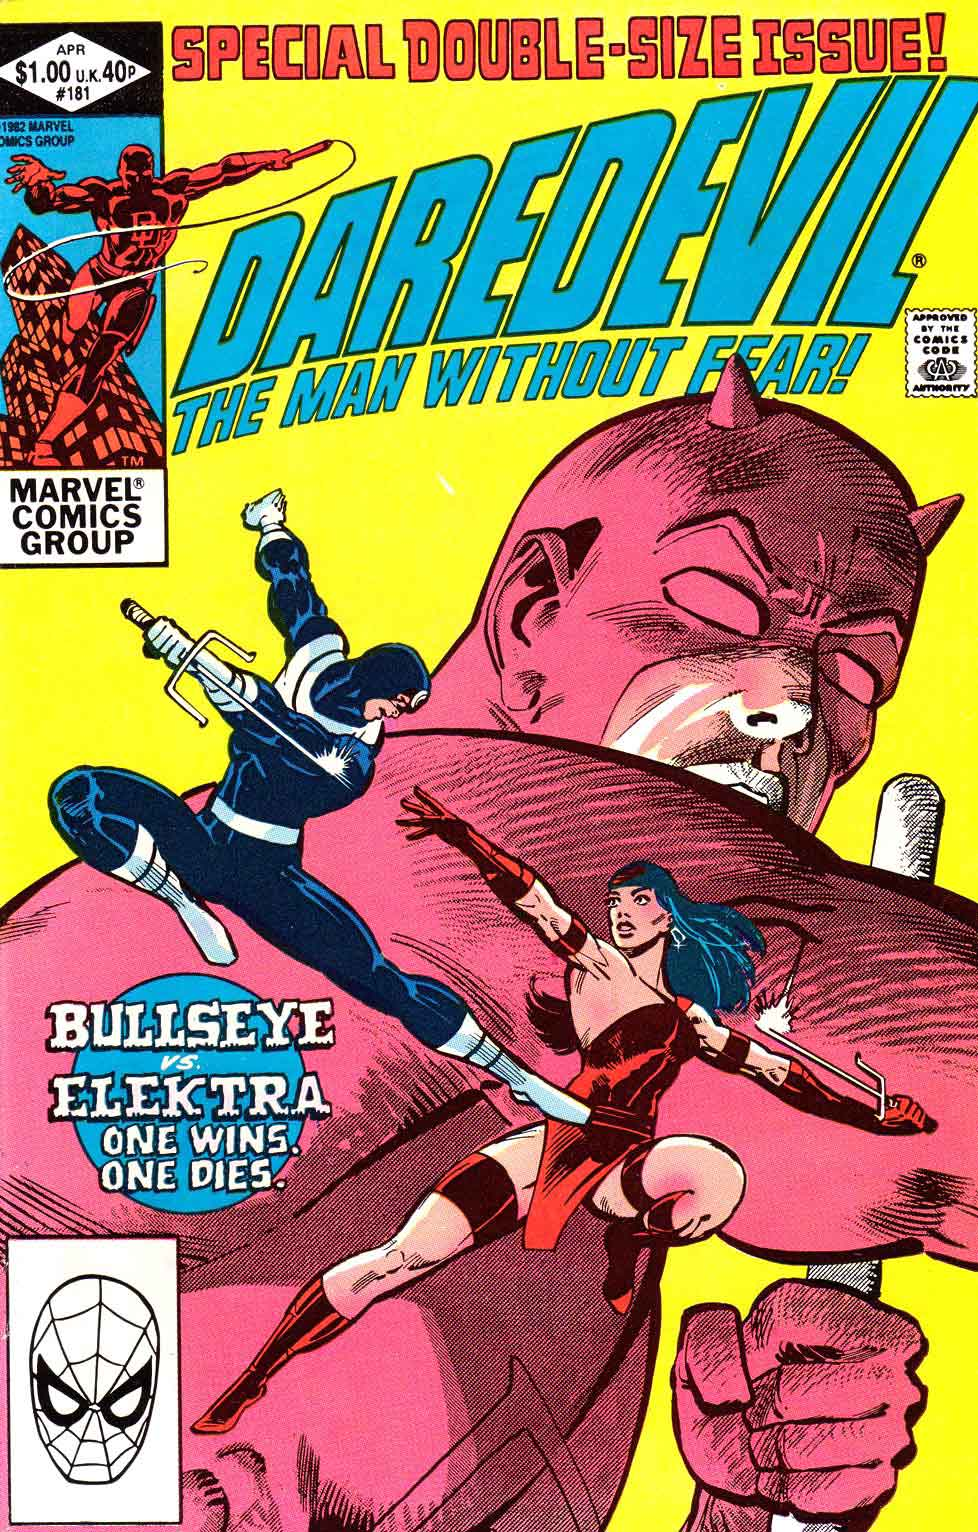 Daredevil v1 #181 elektra bullseye marvel comic book cover art by Frank Miller